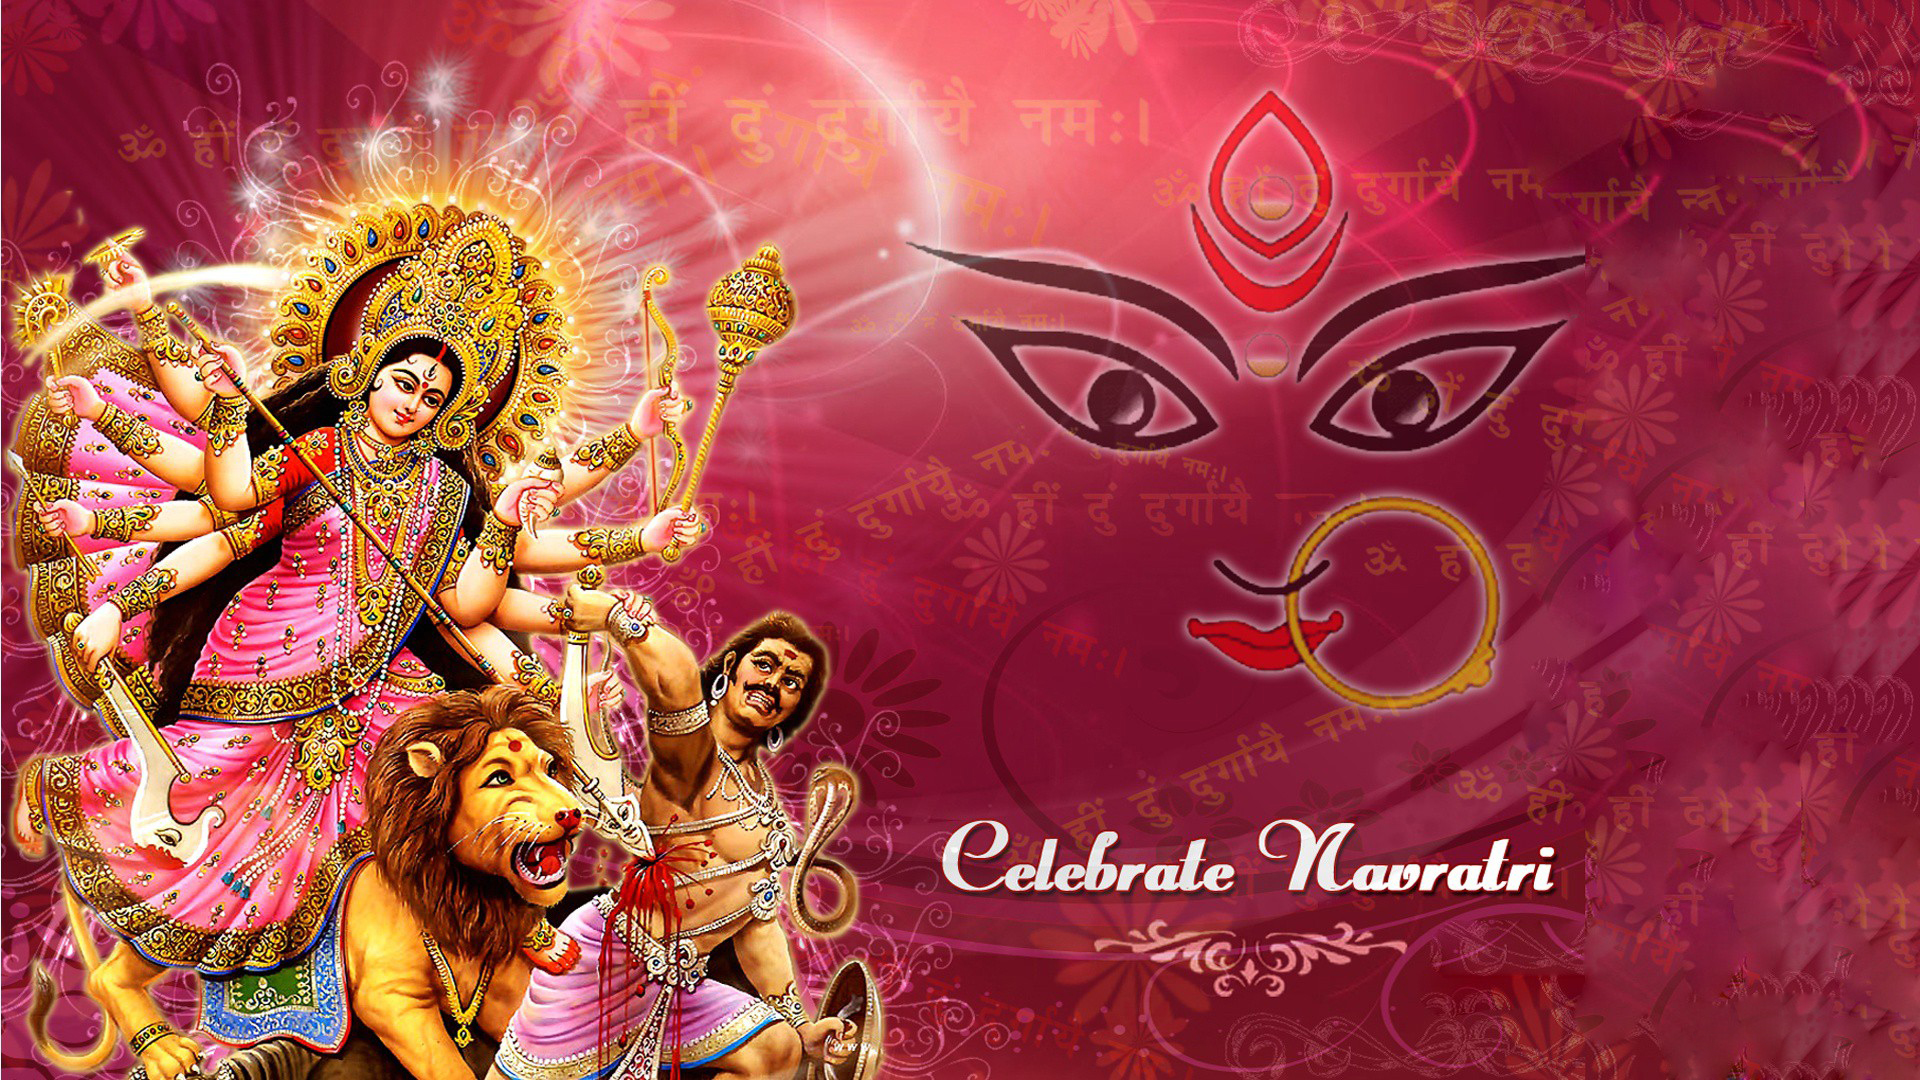 maa durga ji photos hd